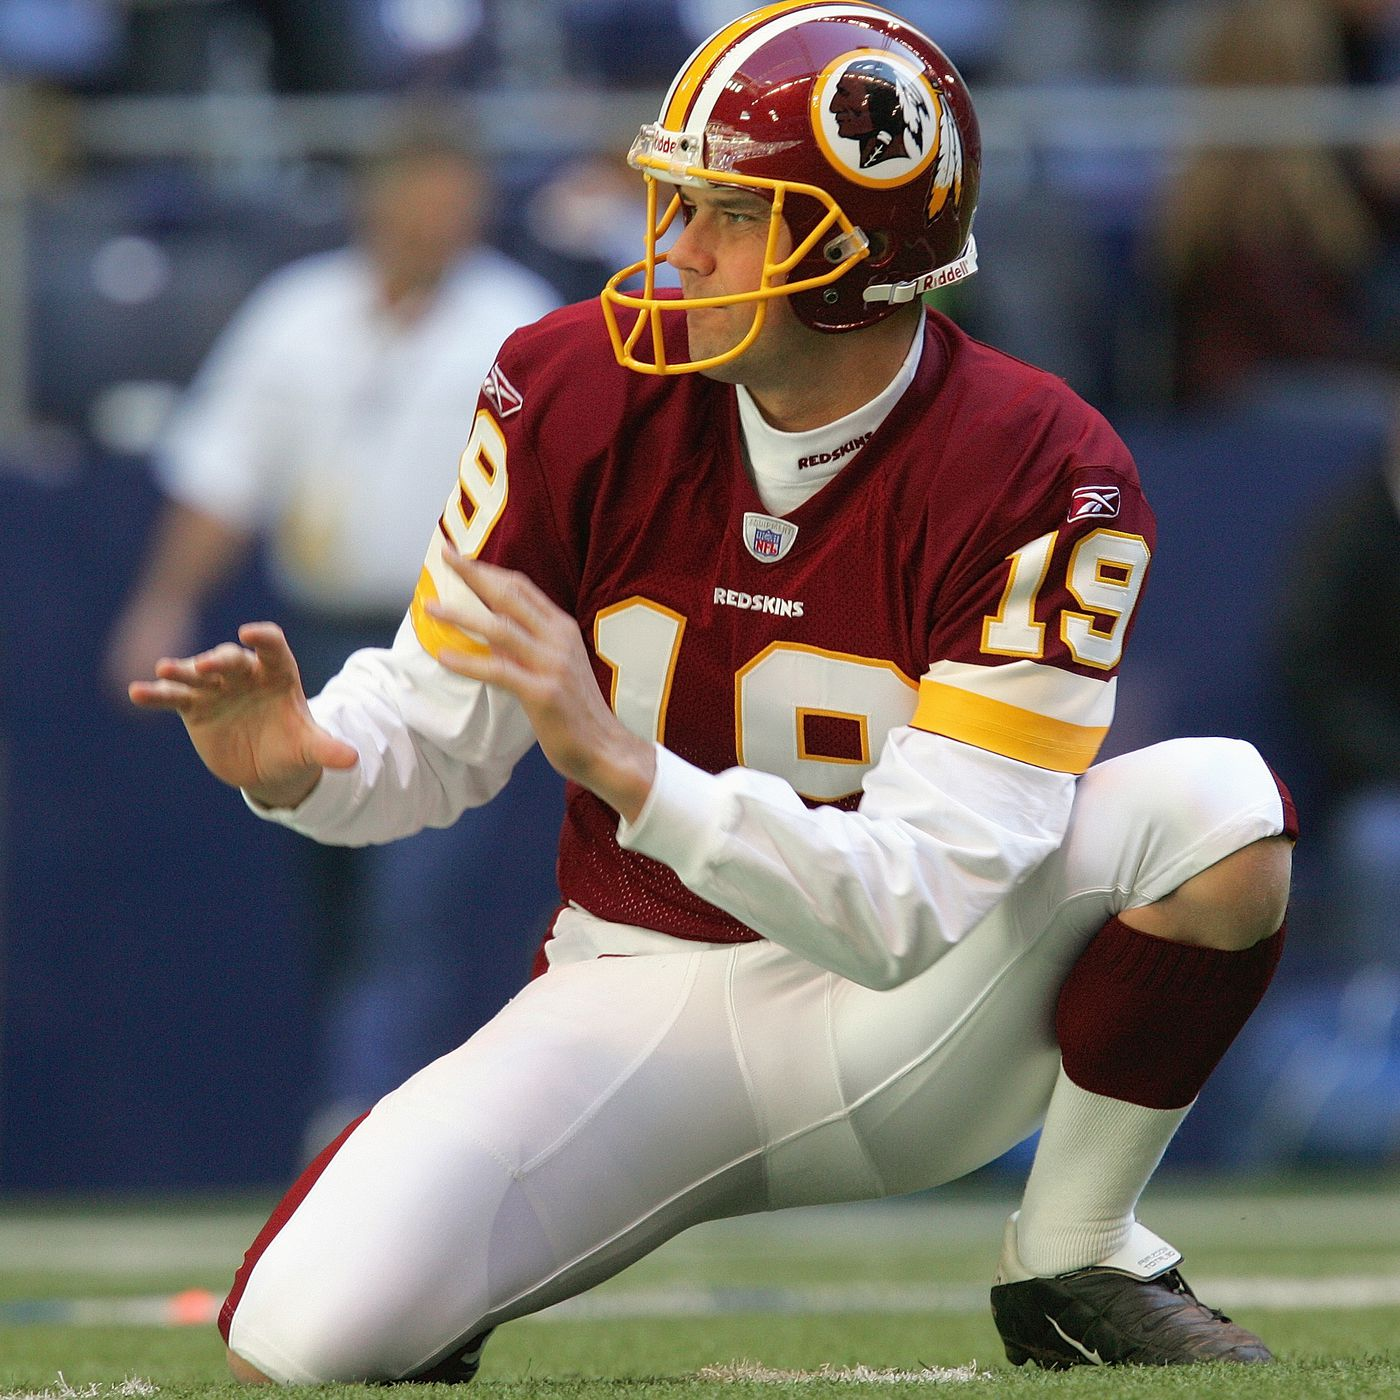 Washington Redskins By The (Jersey) Numbers: #19 - Is Mr. Tupa ...